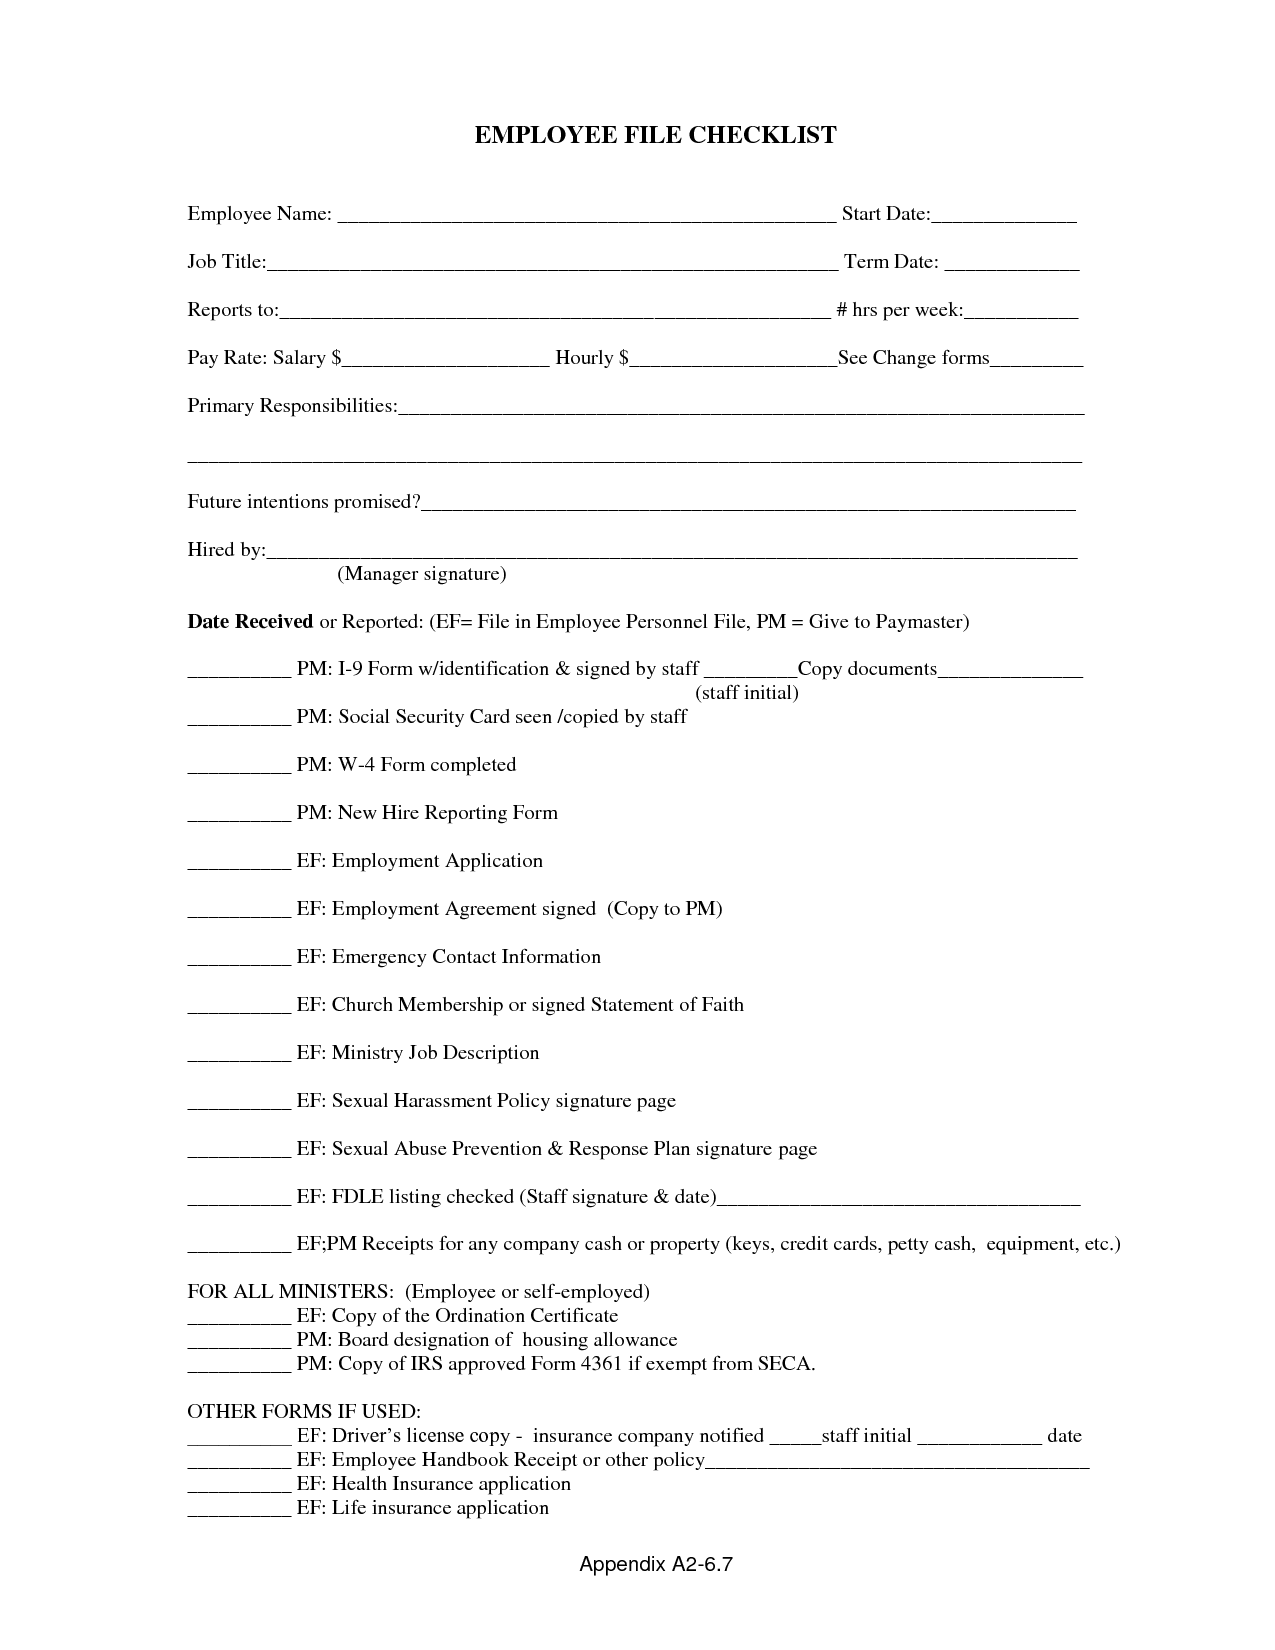 15 Best Images Of Elementary Landform Worksheet